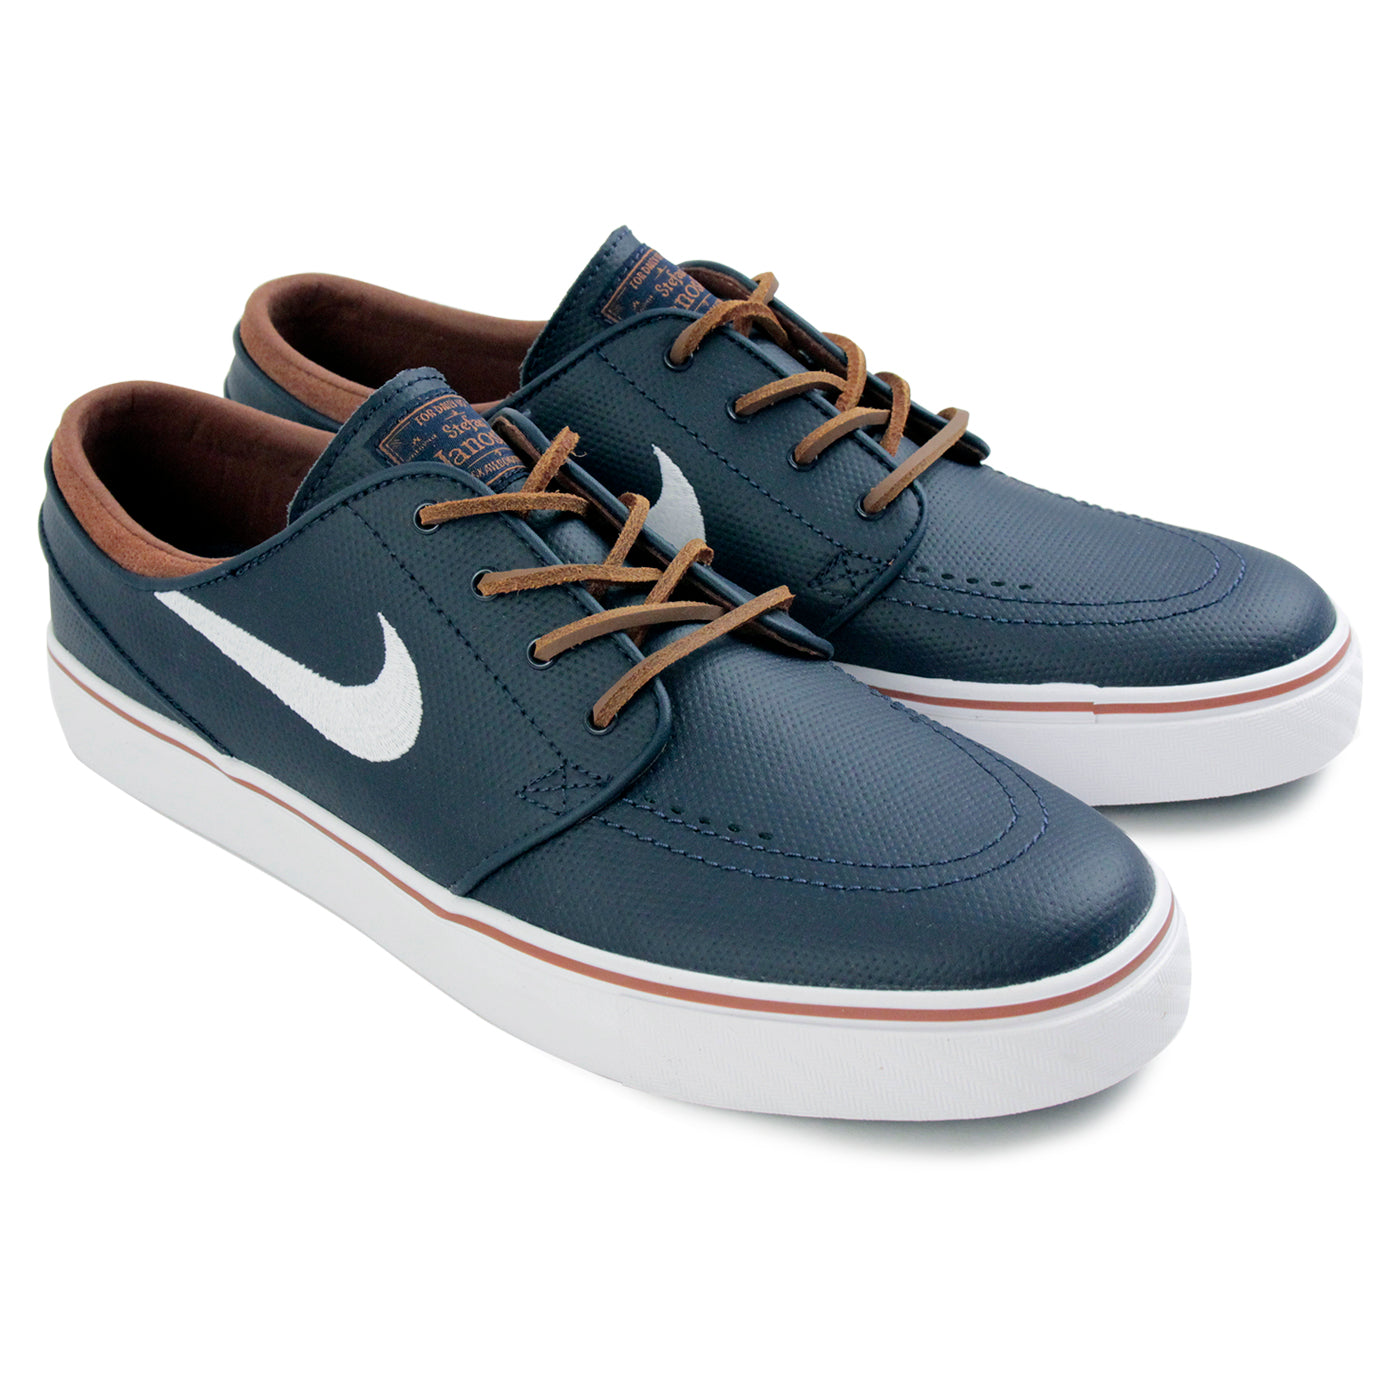 19aebcbb684f Stefan Janoski OG Shoes in Obsidian   White - Rustic - White by Nike ...